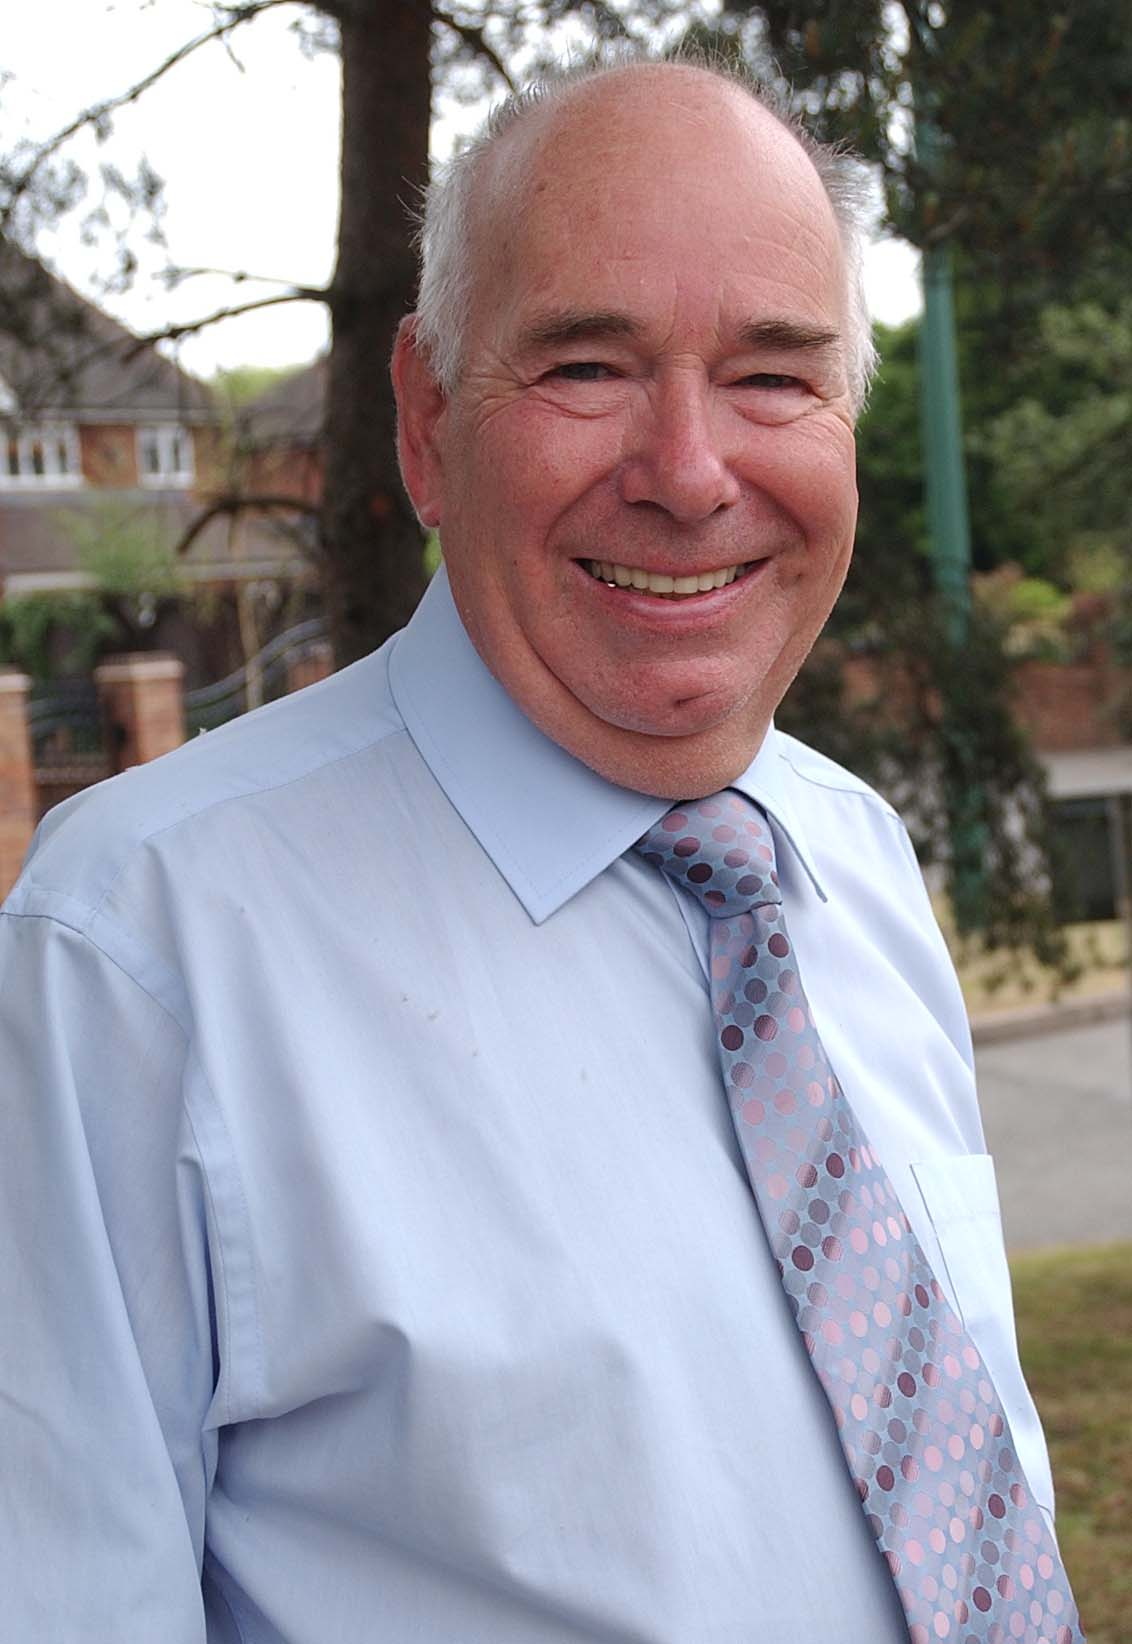 Cllr Peter Hogarth MBE